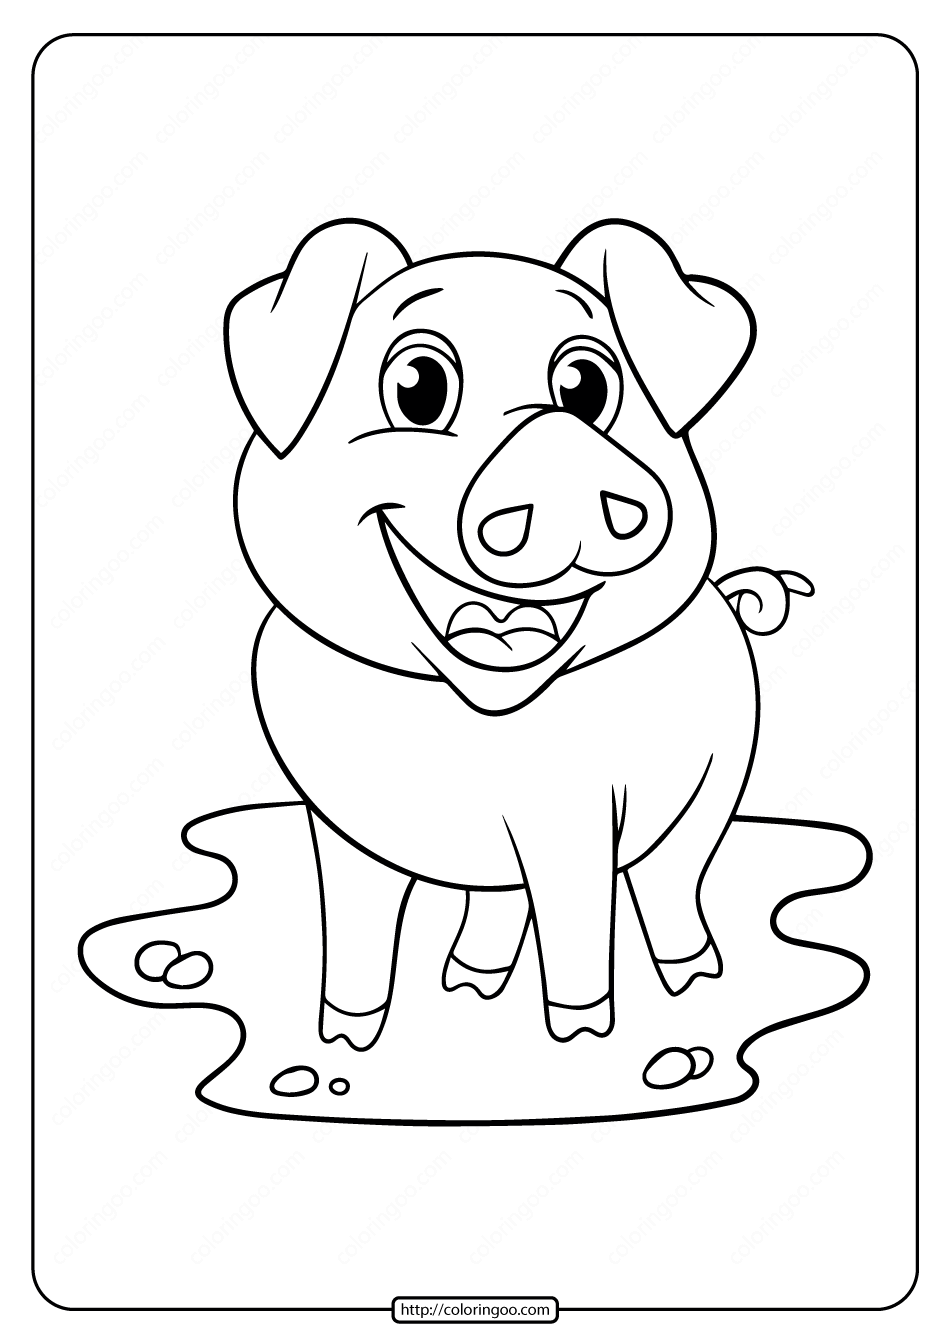 Printable Pig Coloring Pages Free for Kids